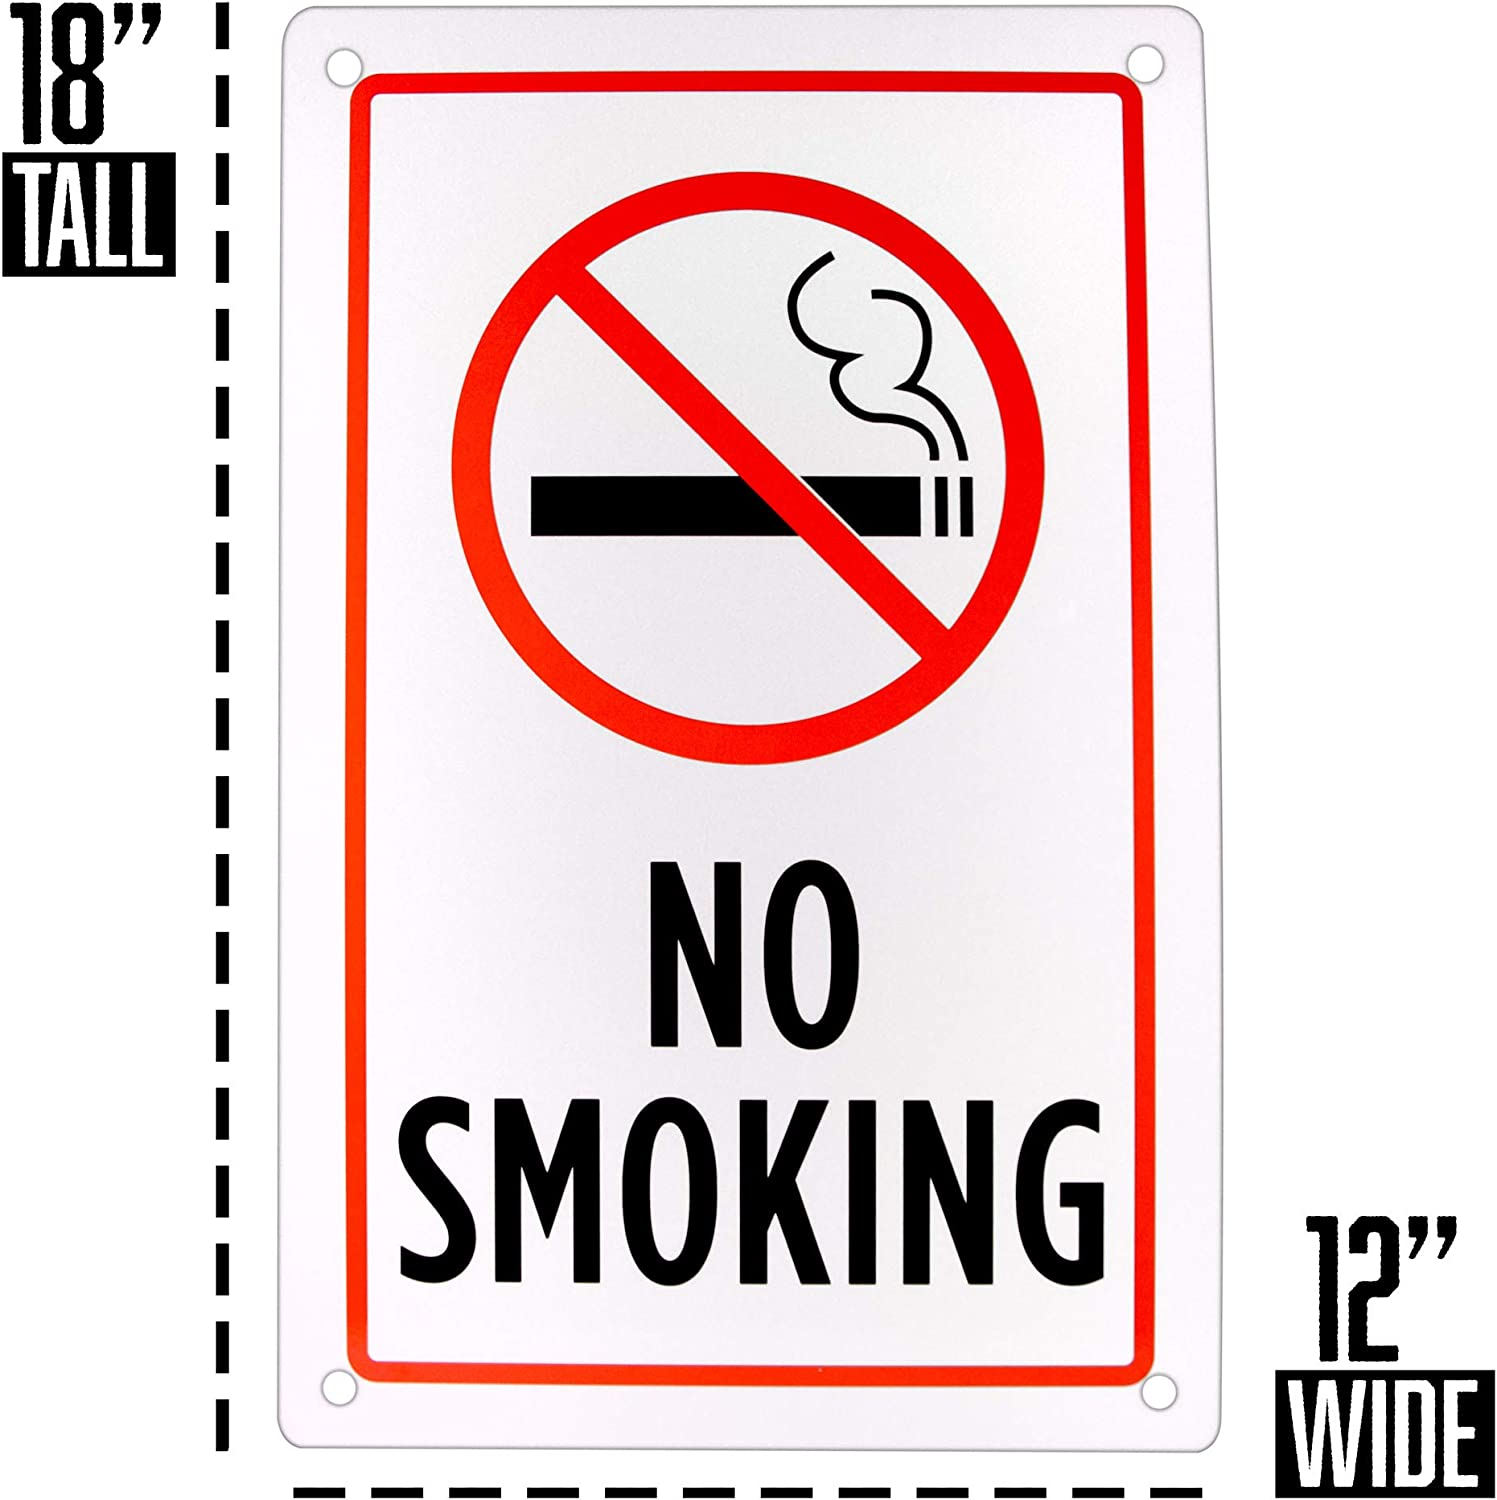 """NO SMOKING SIGN,DAYCARE SIGN,9/""""x12/"""" ALUMINUM SIGN,SAFETY,CHILDREN-3325"""